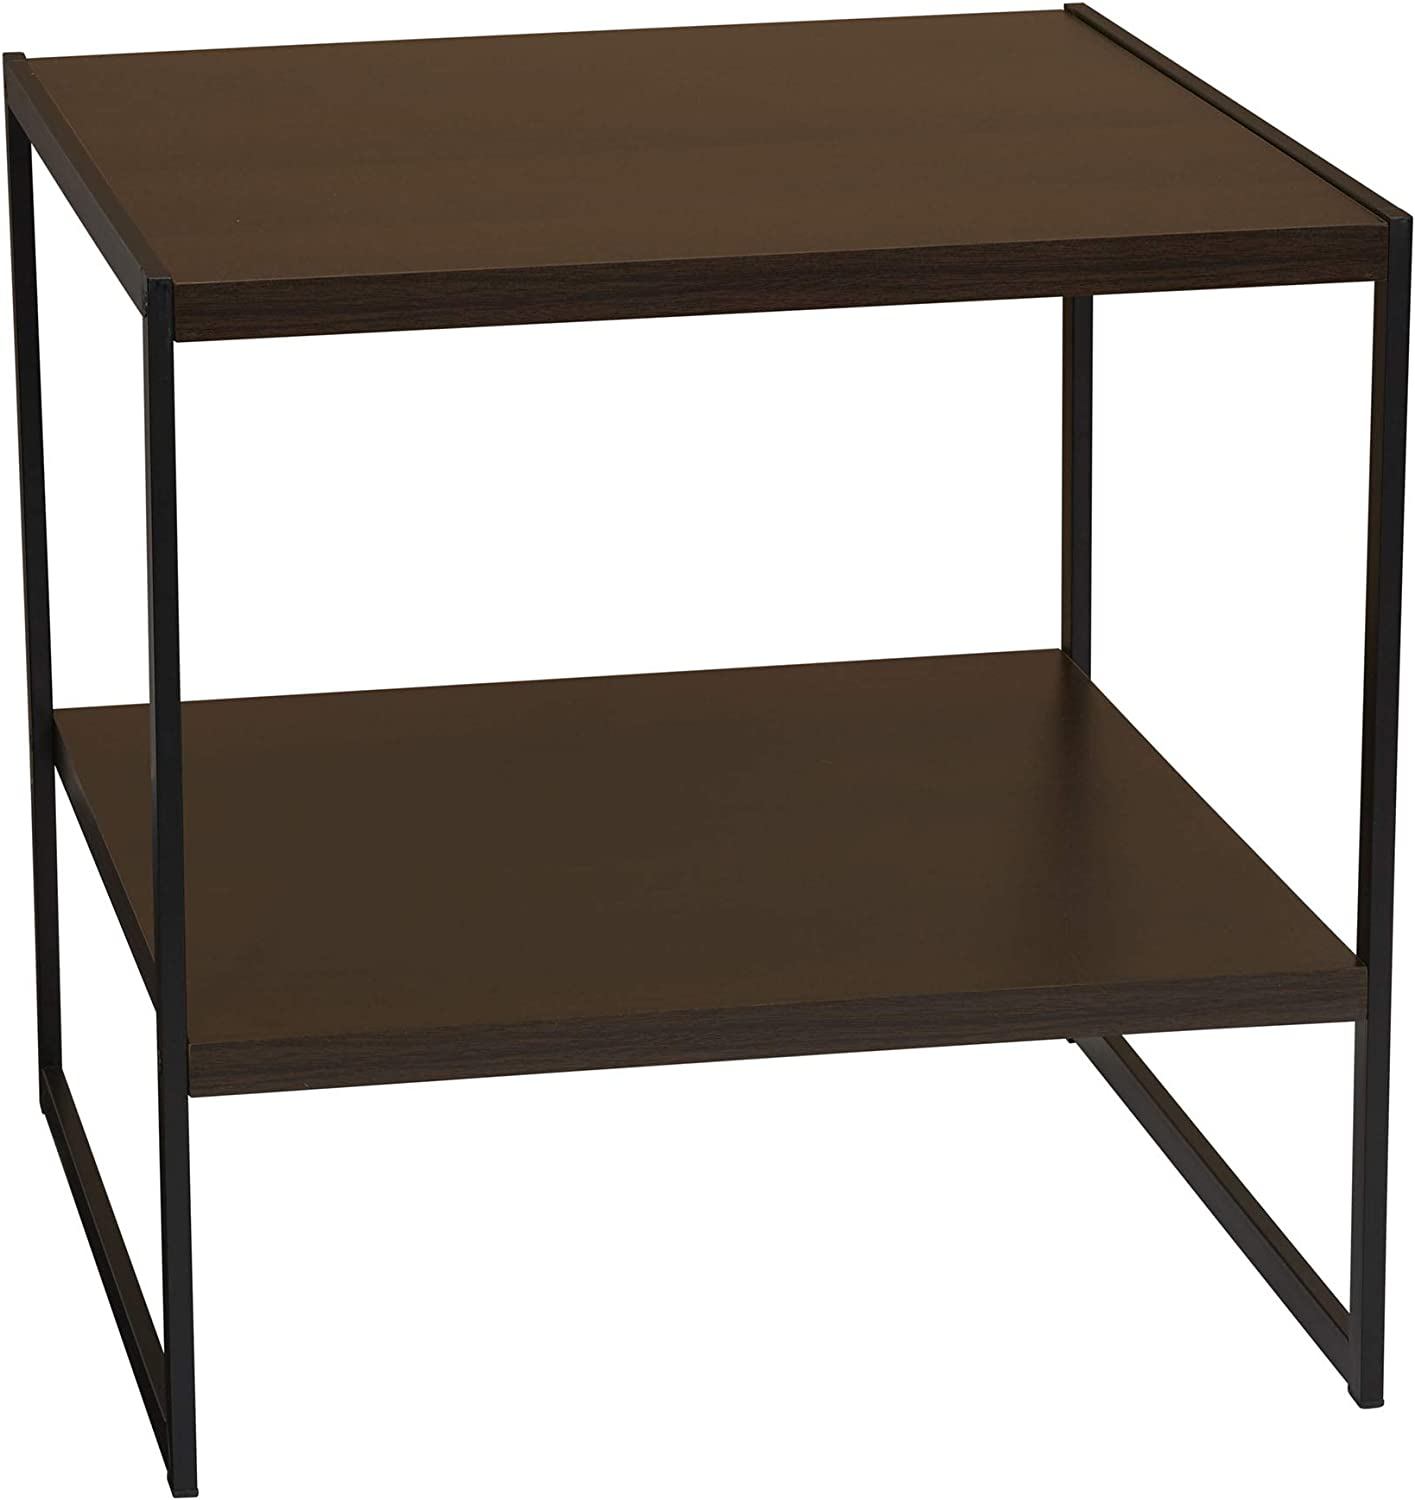 "Household Essentials Square Wooden Side End Table with Storage Shelf W H x 19.7"" D 